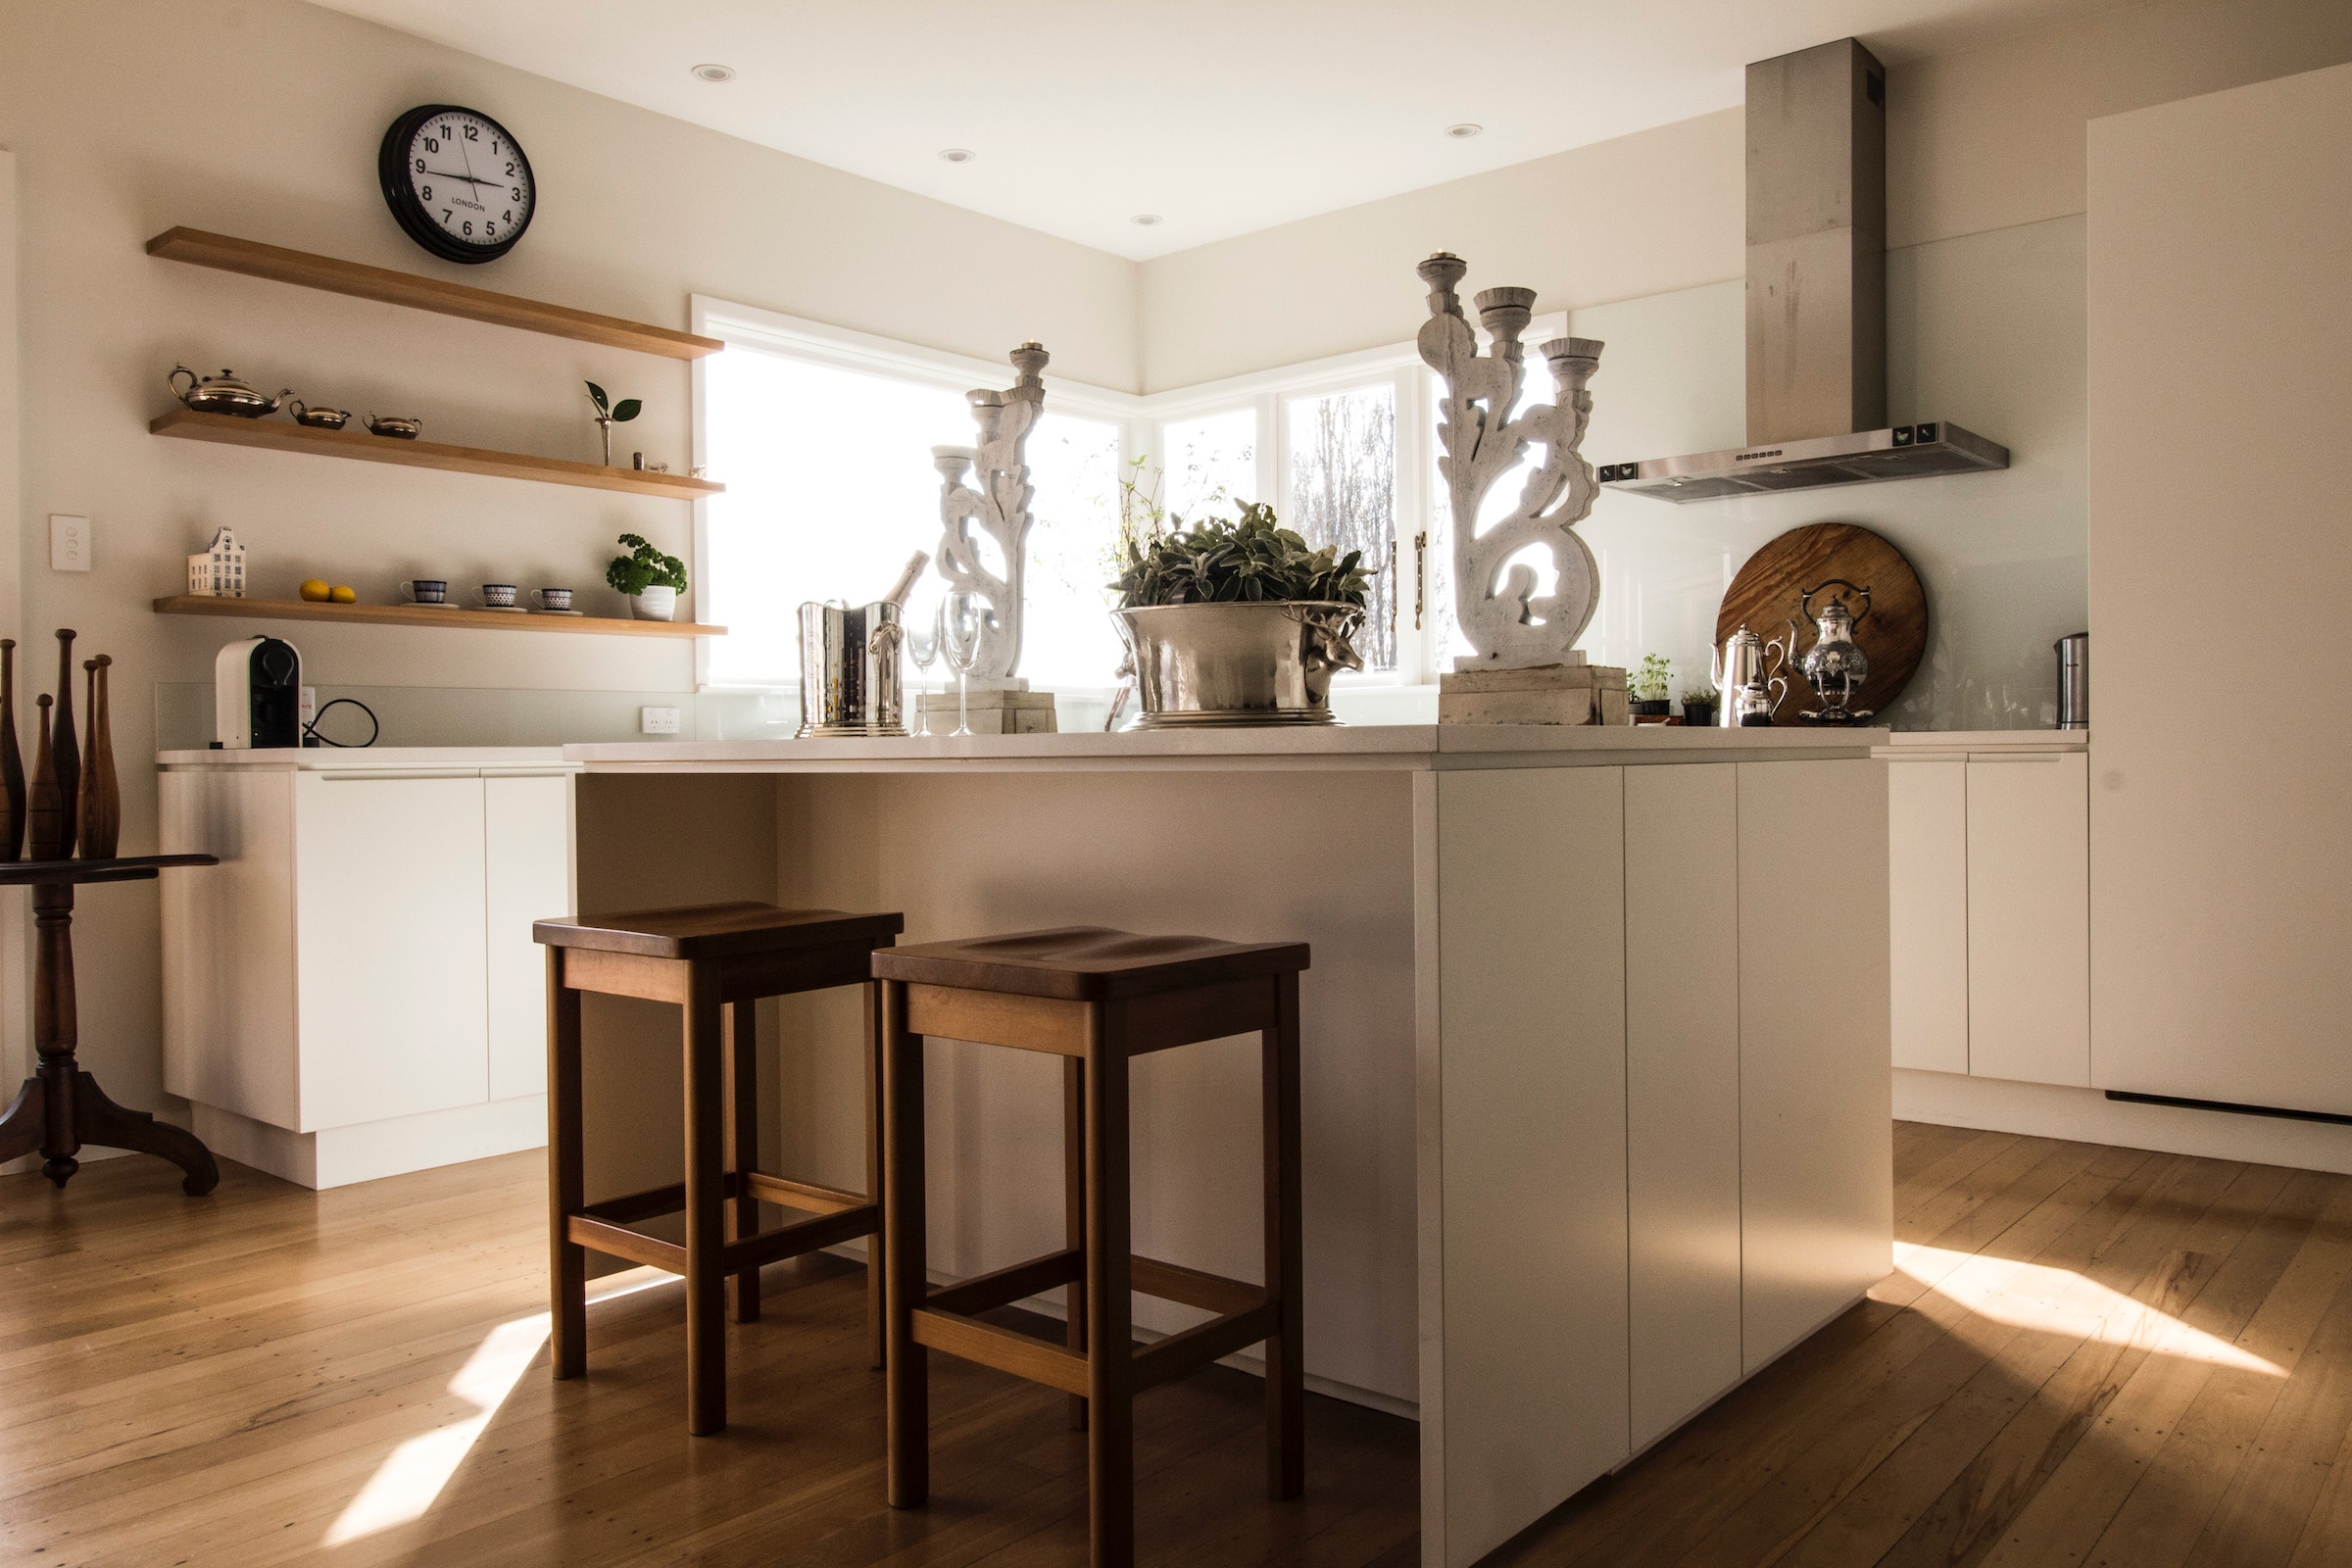 Open concept kitchens are trending right now